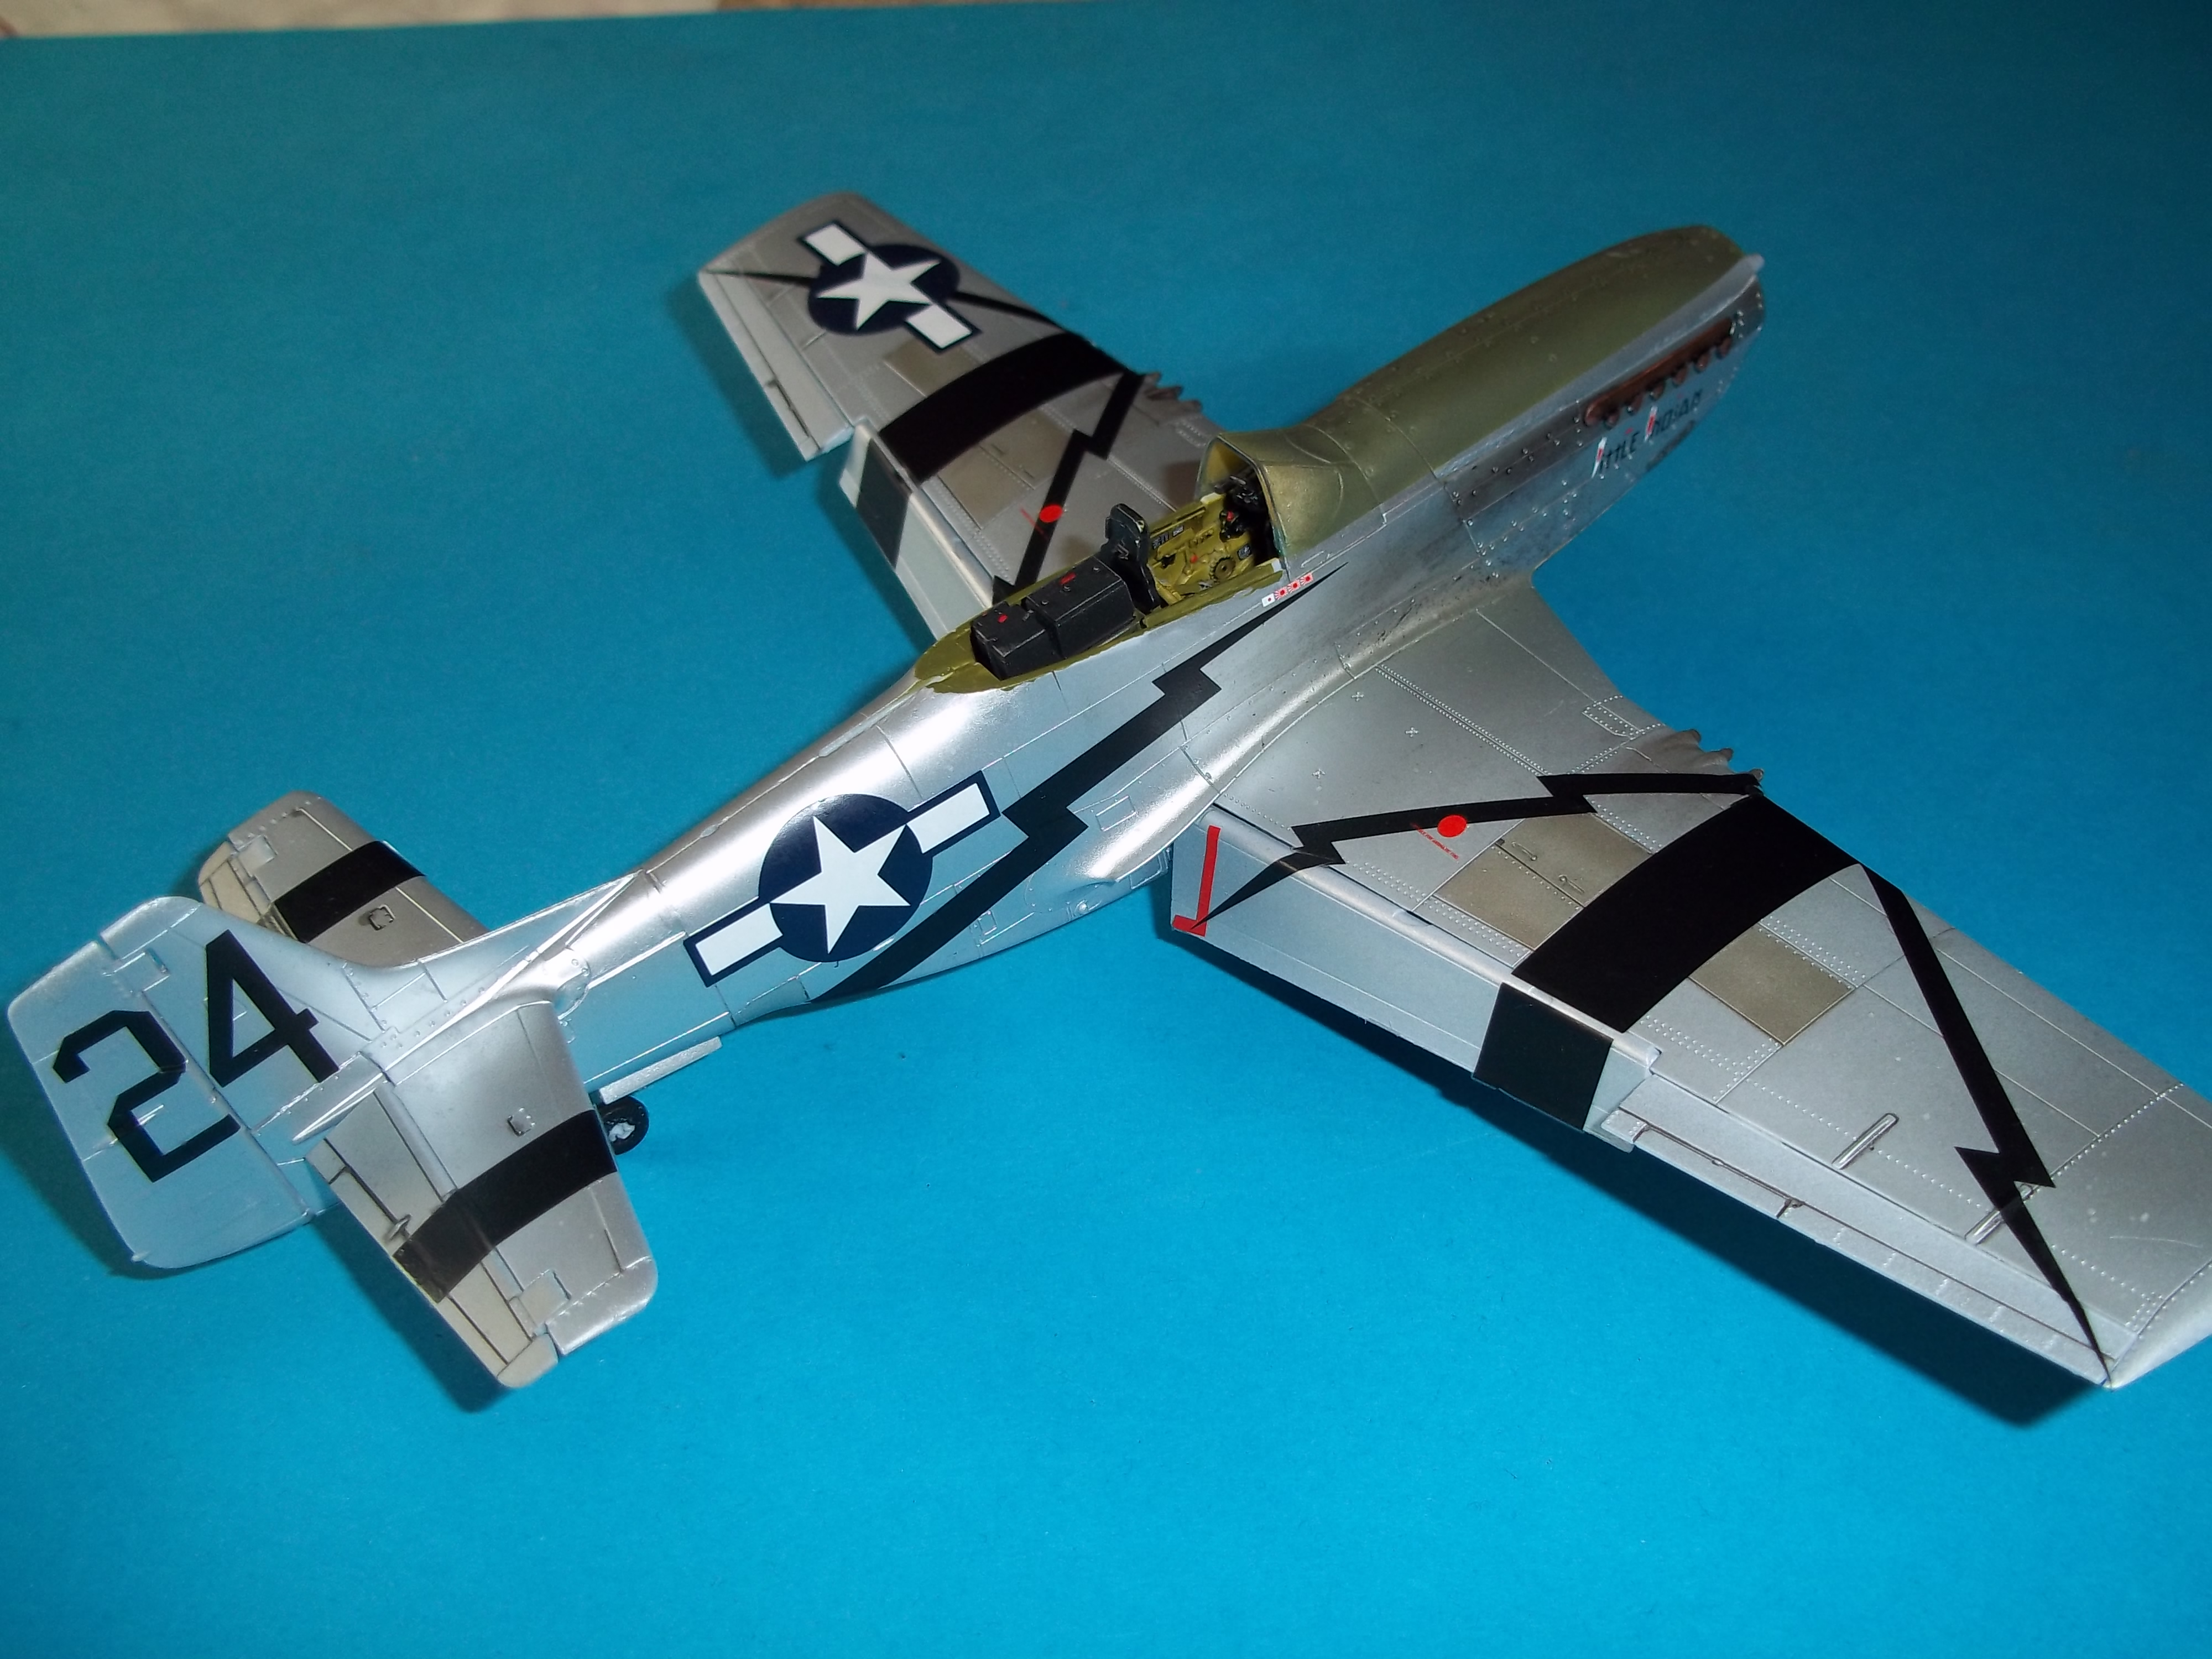 P 51D mustang 1/48 airfix  - Page 2 181012054251684546